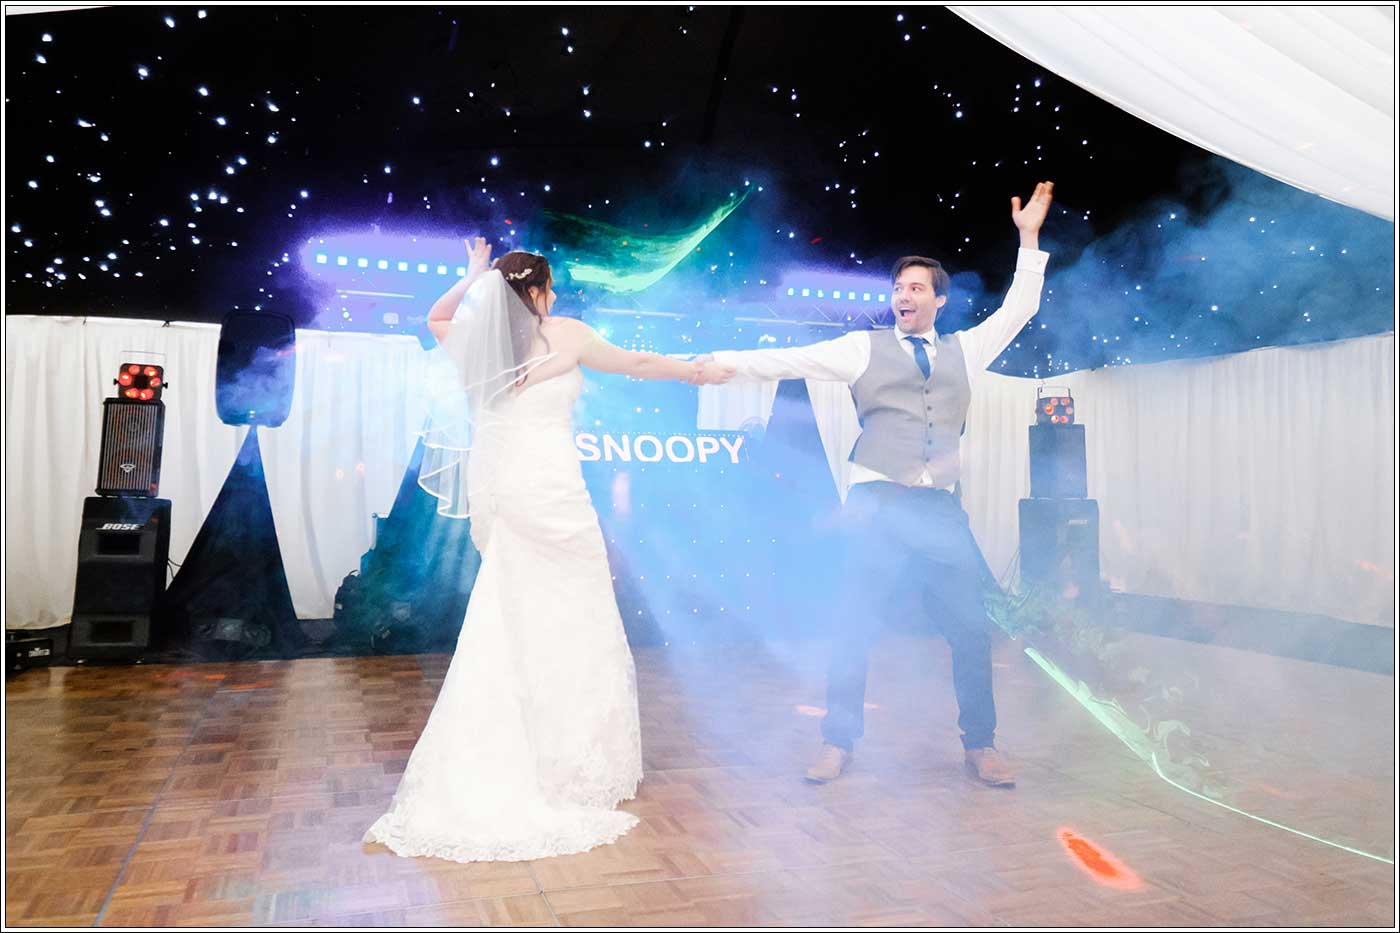 Groom and bride's first dance routine